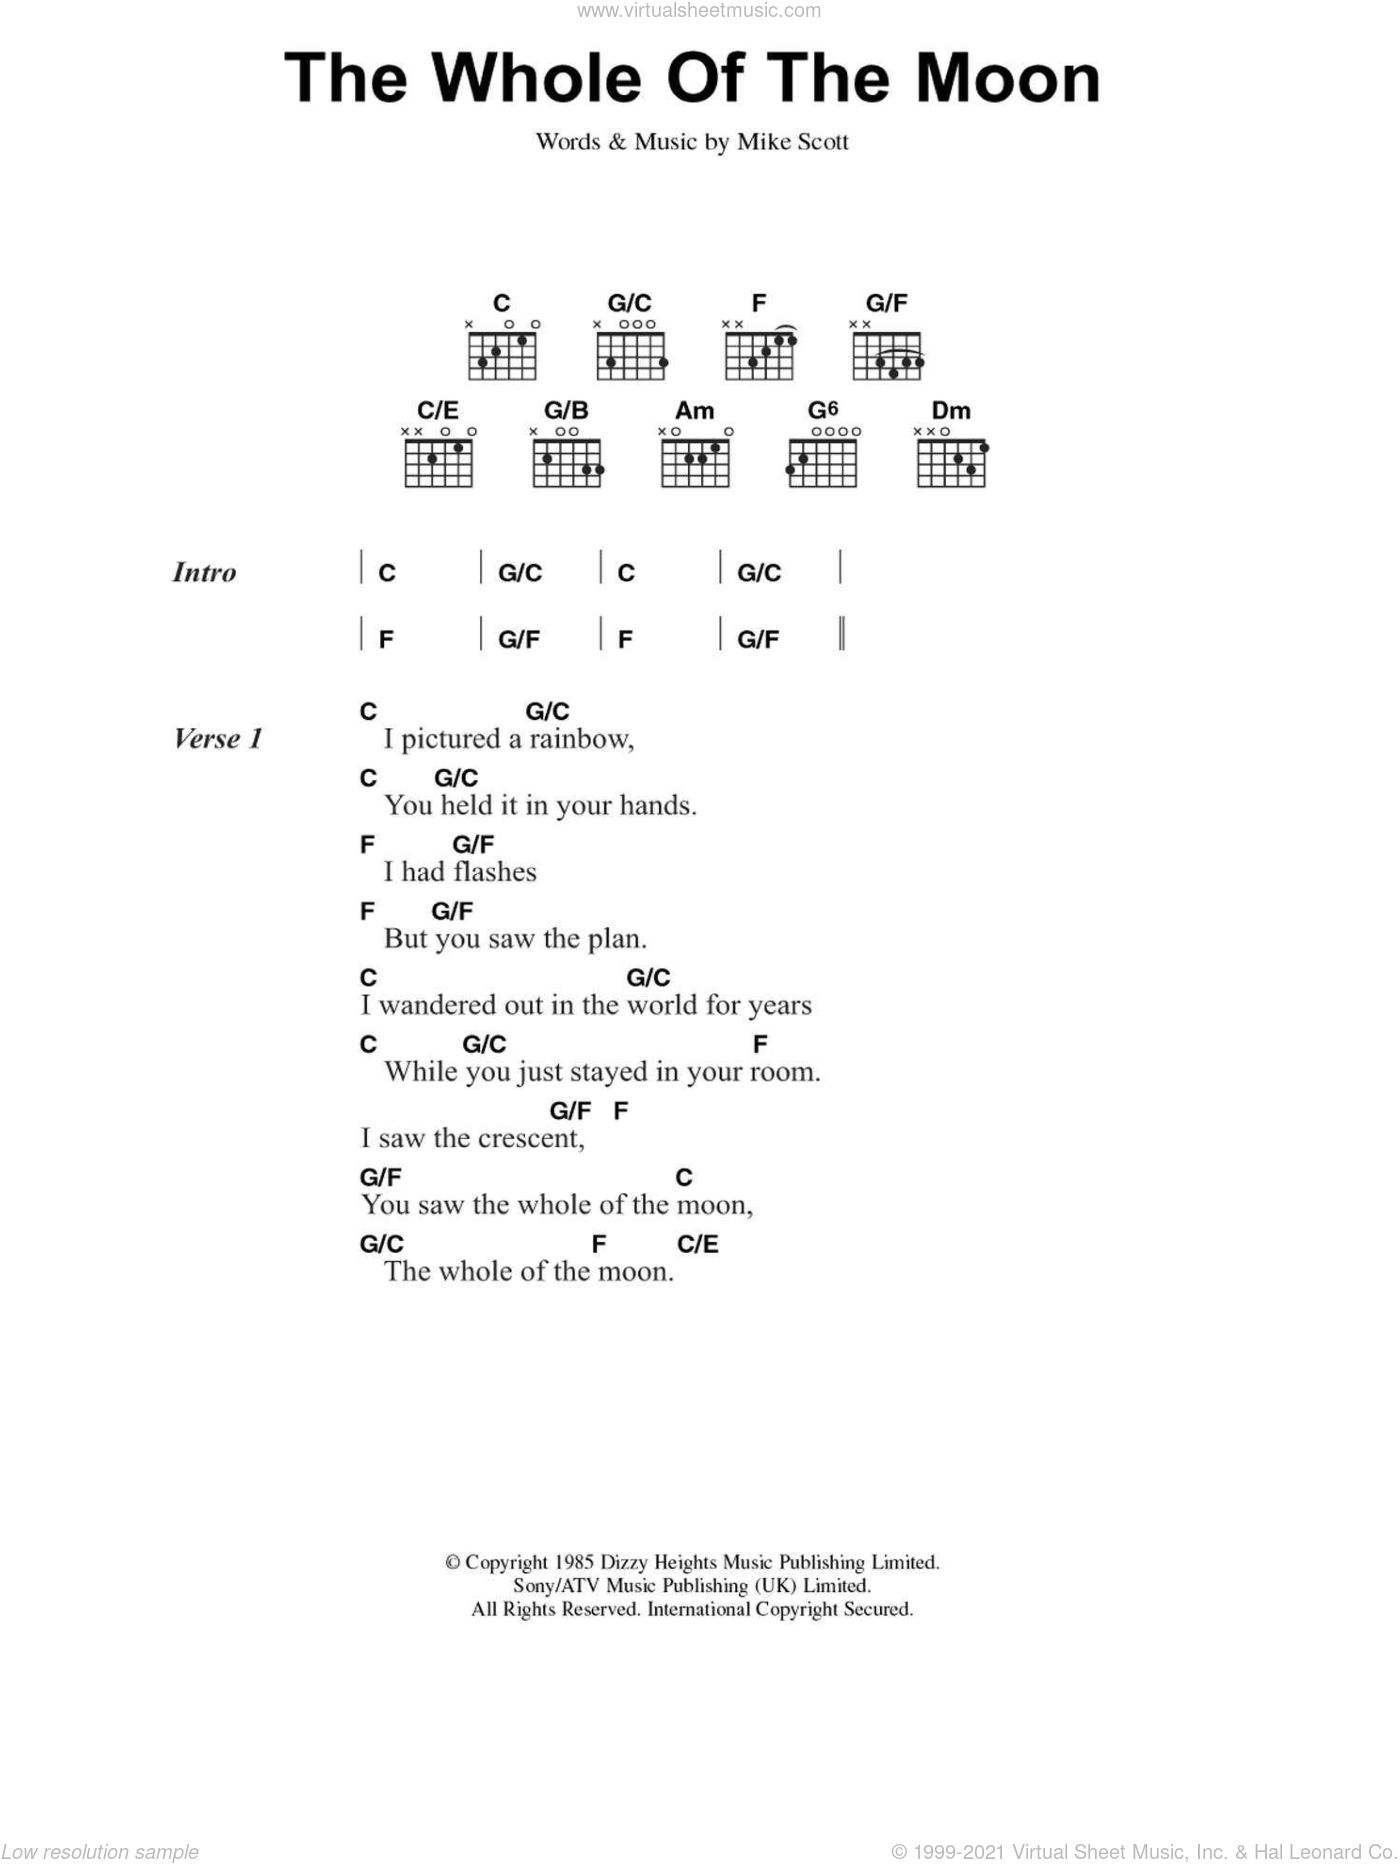 The Whole Of The Moon sheet music for guitar (chords) by The Waterboys and Mike Scott, intermediate skill level